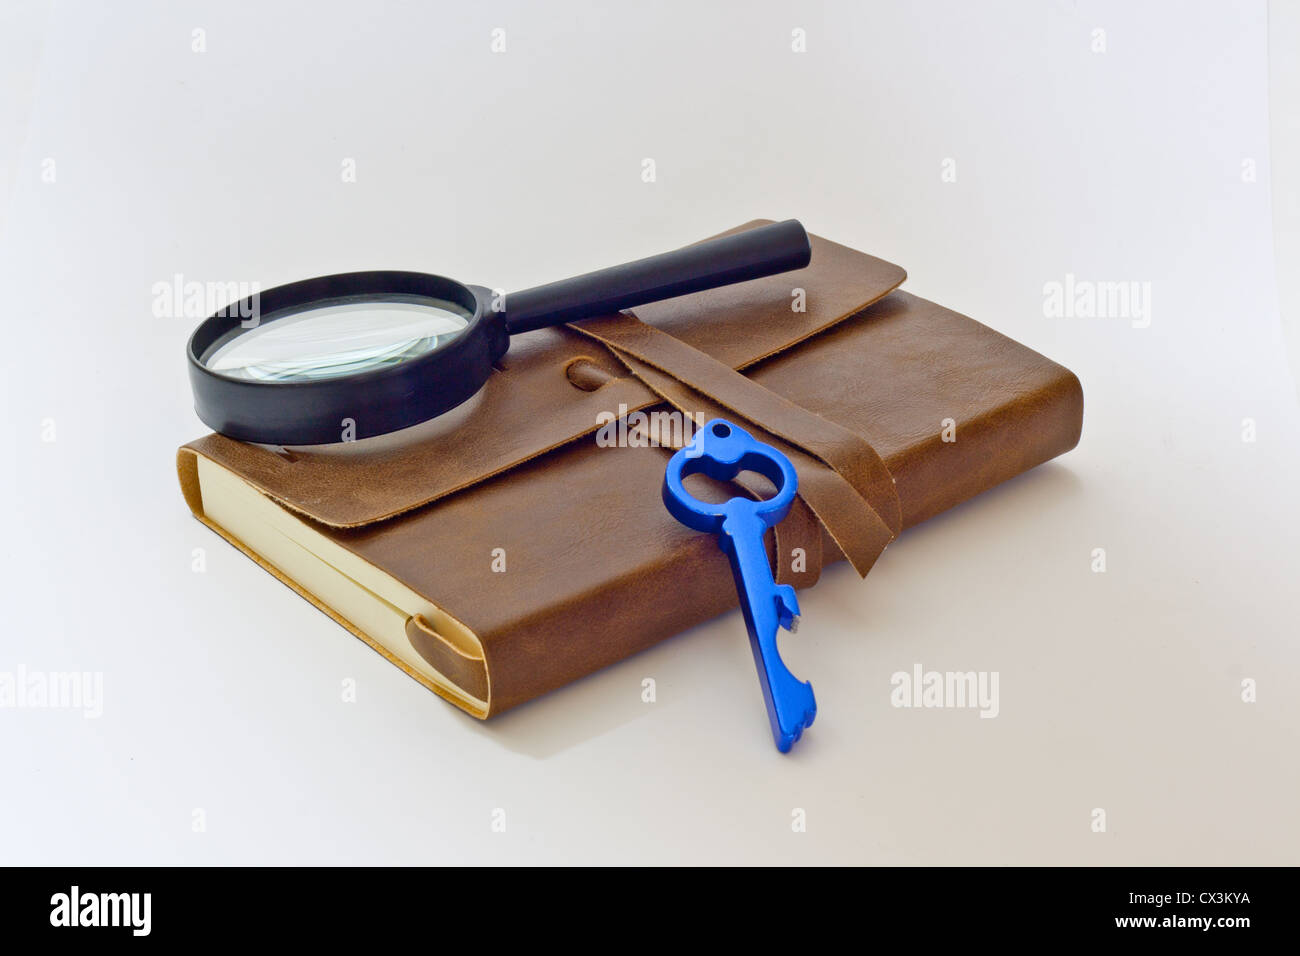 detective notebook and key - Stock Image